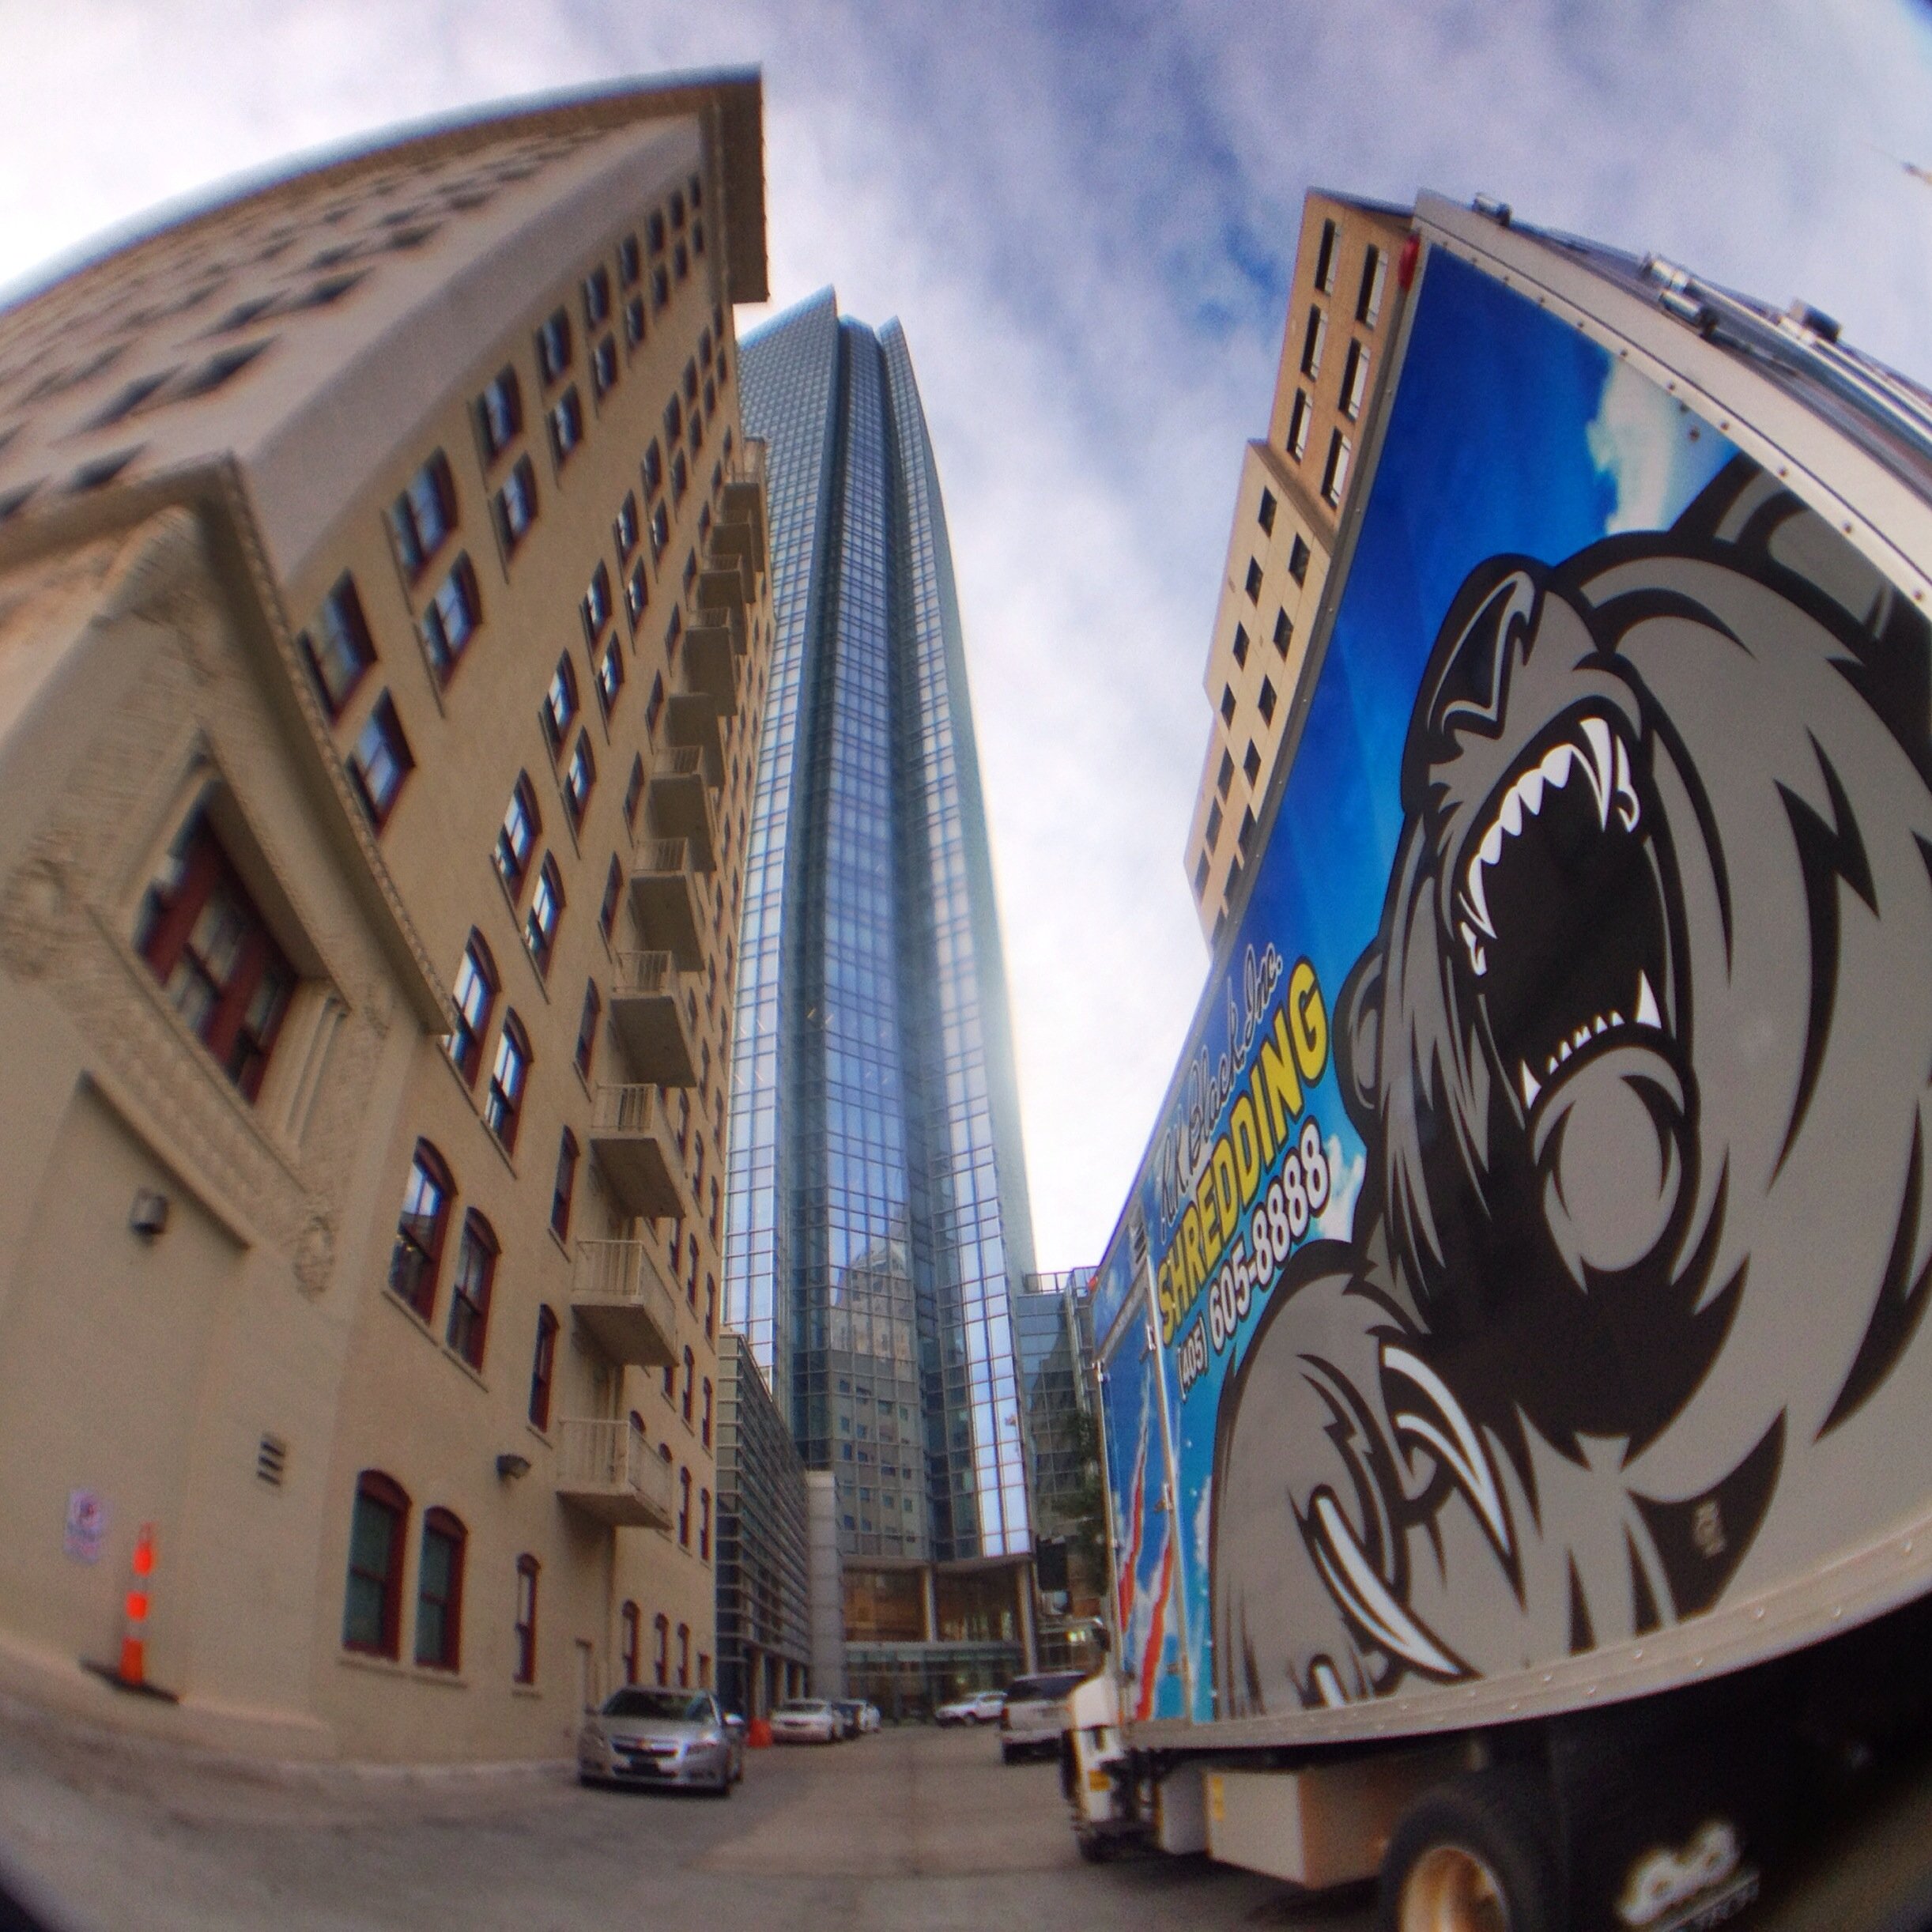 Image of mobile shredding truck in downtown Oklahoma City.